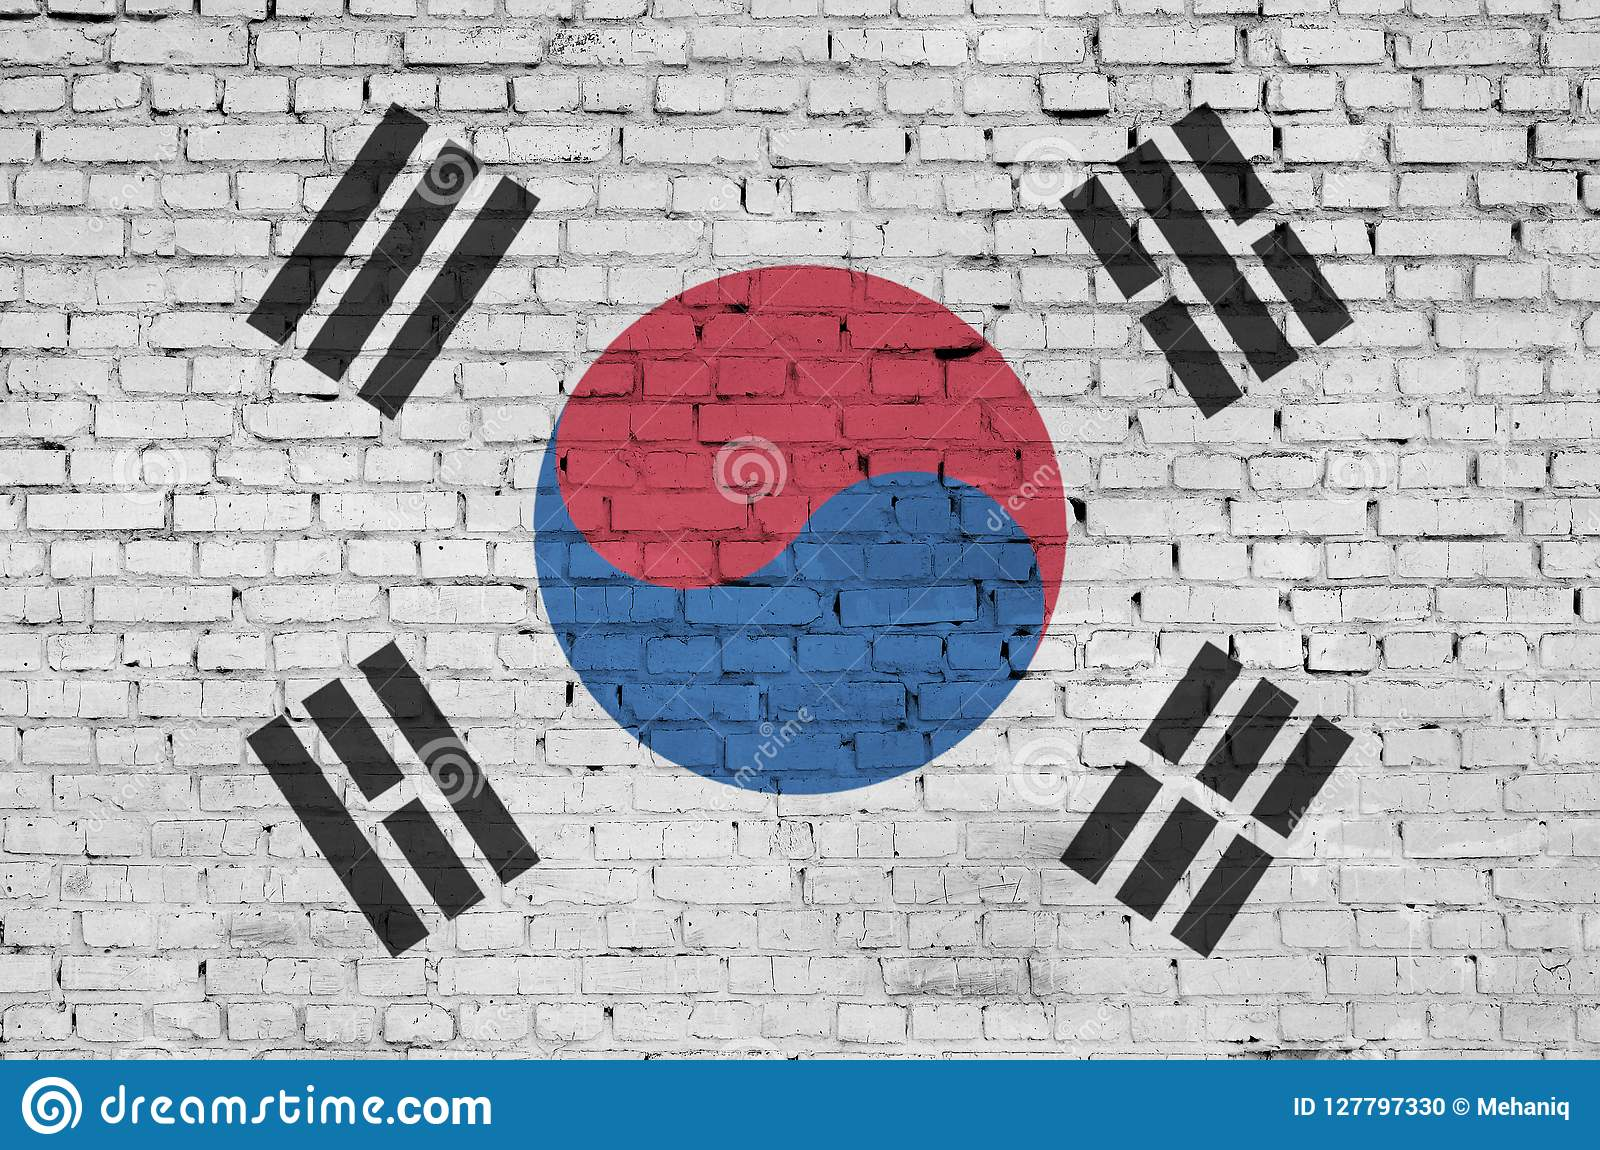 South Korea flag is painted onto an old brick wall